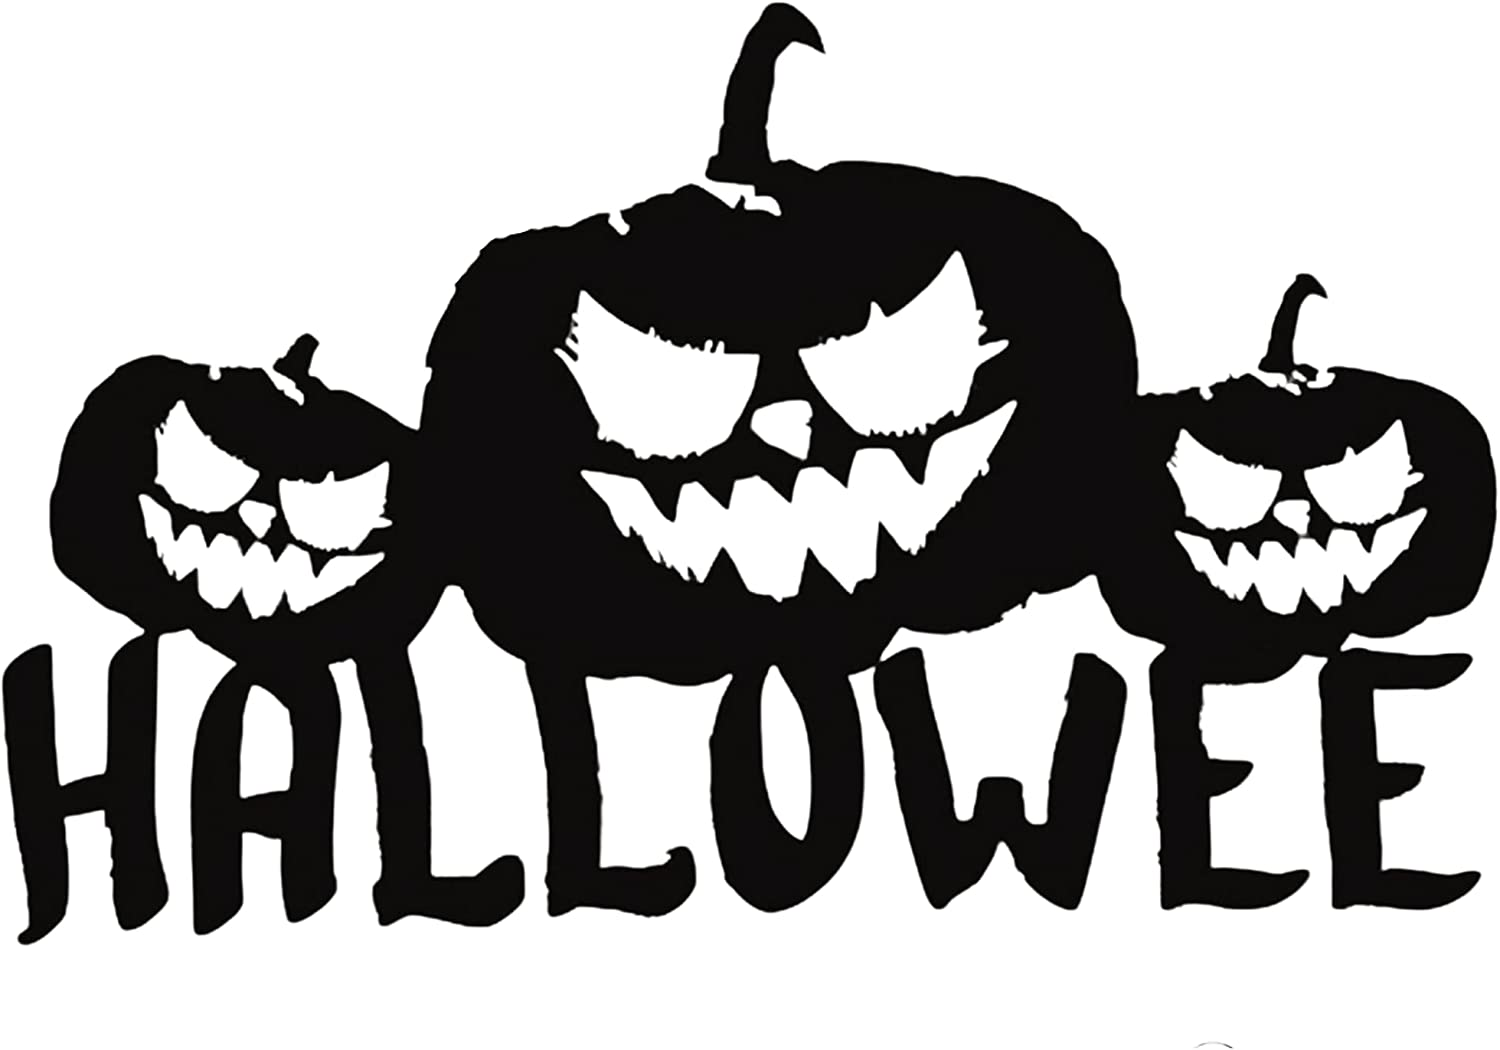 Afcultures Halloween Pumpkin Decor - Home Max 59% OFF Direct sale of manufacturer 12x12in Deco